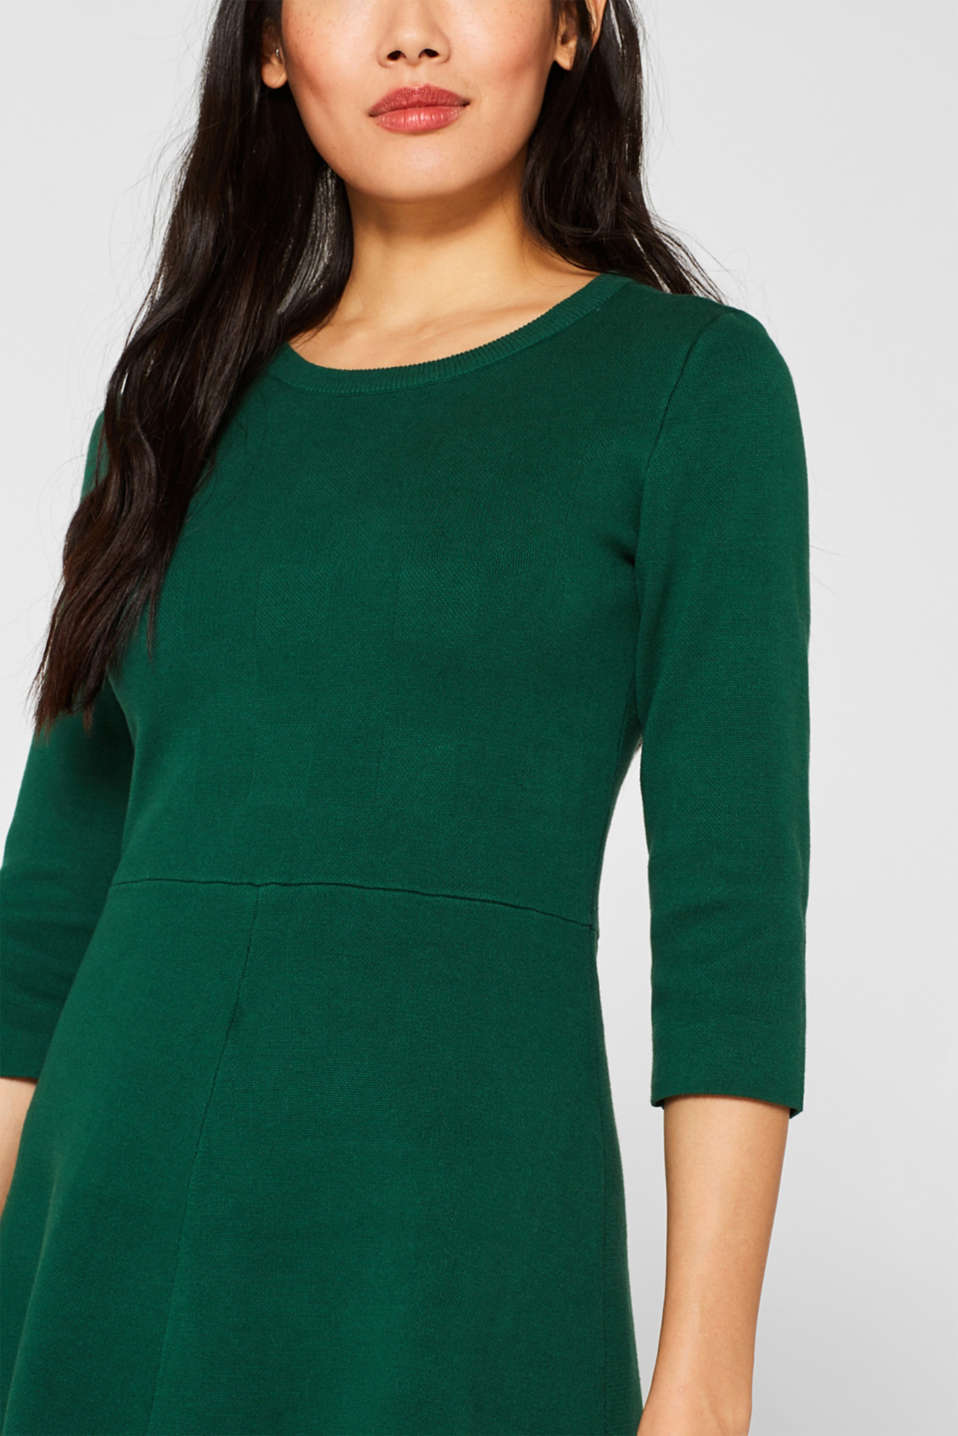 Compact knit dress in an A-line silhouette, BOTTLE GREEN, detail image number 3